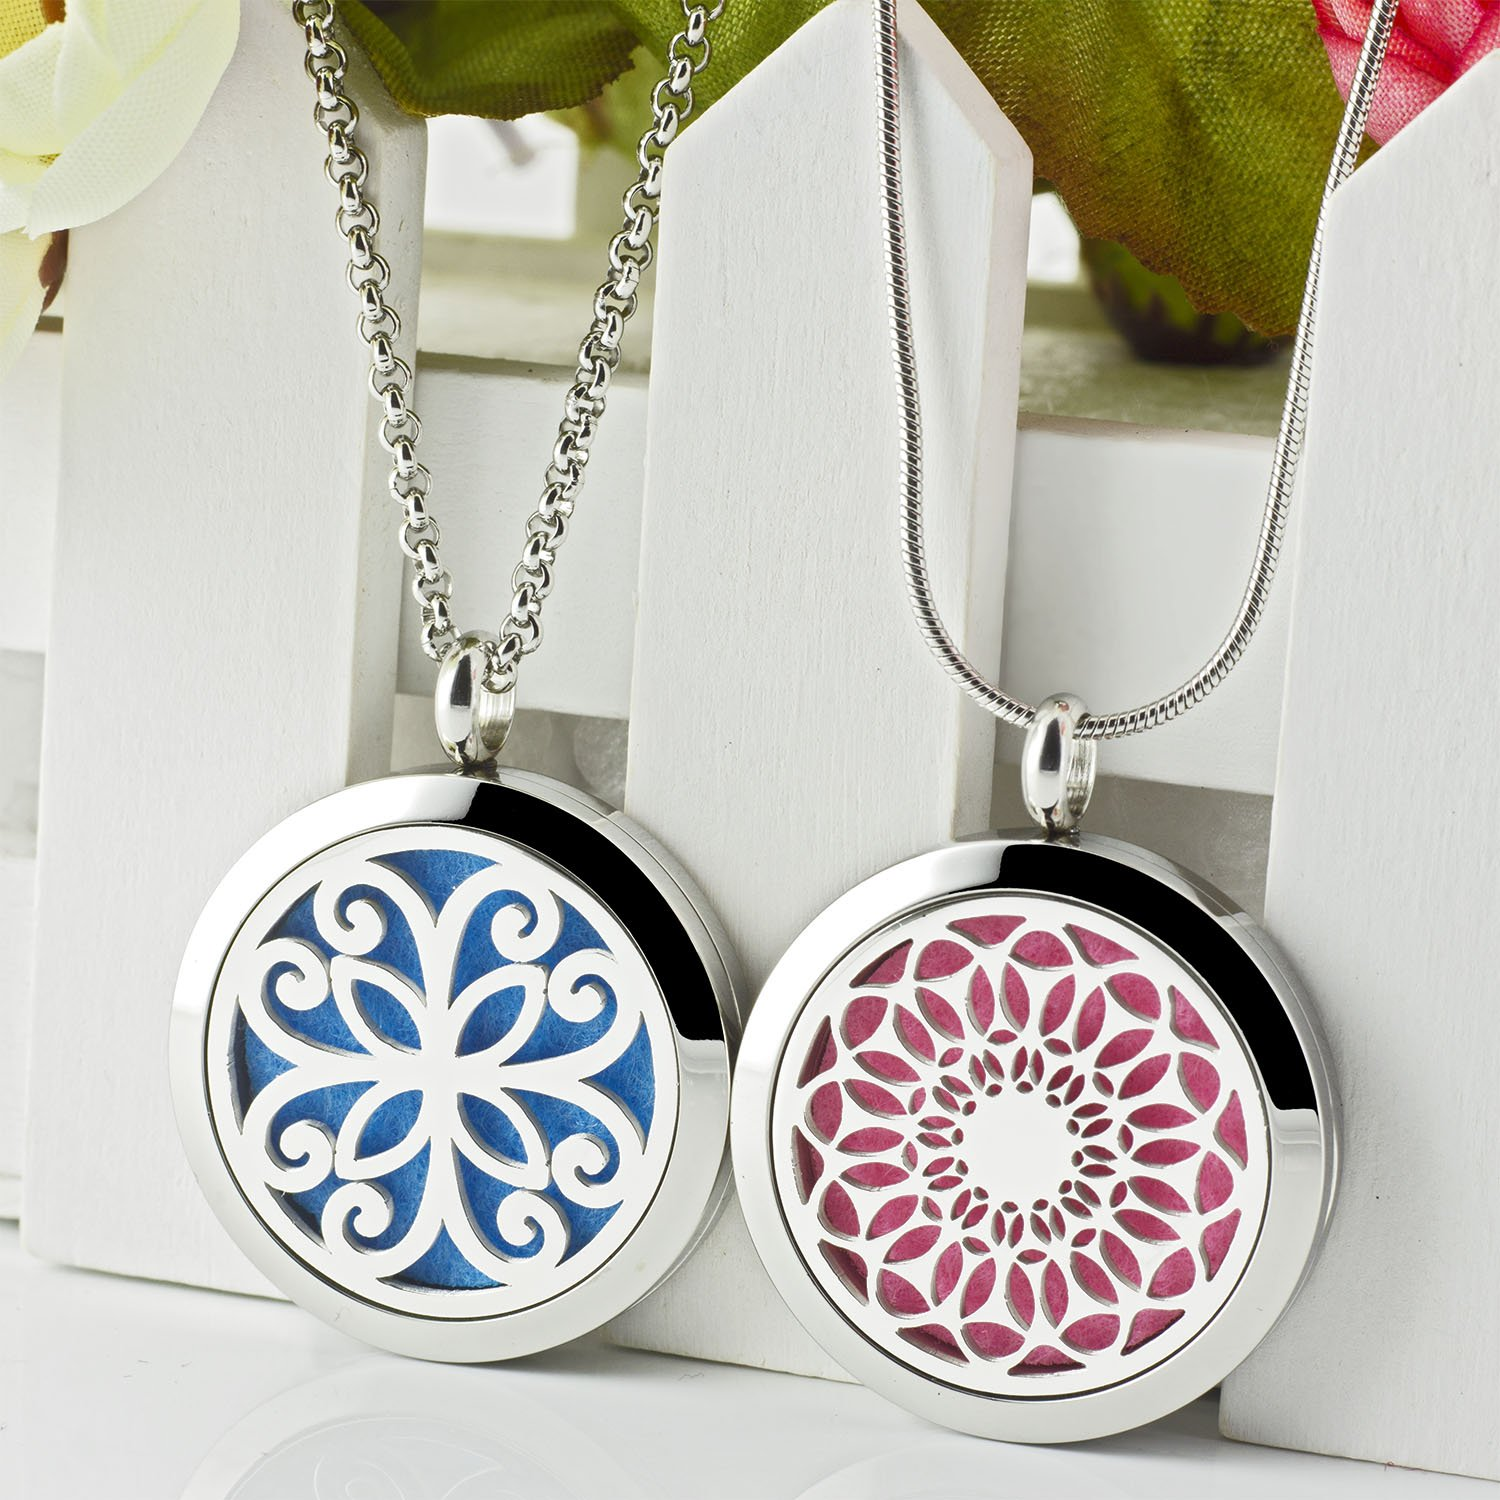 Amazon.com: 2 Styles Aromatherapy Necklace Diffuser for